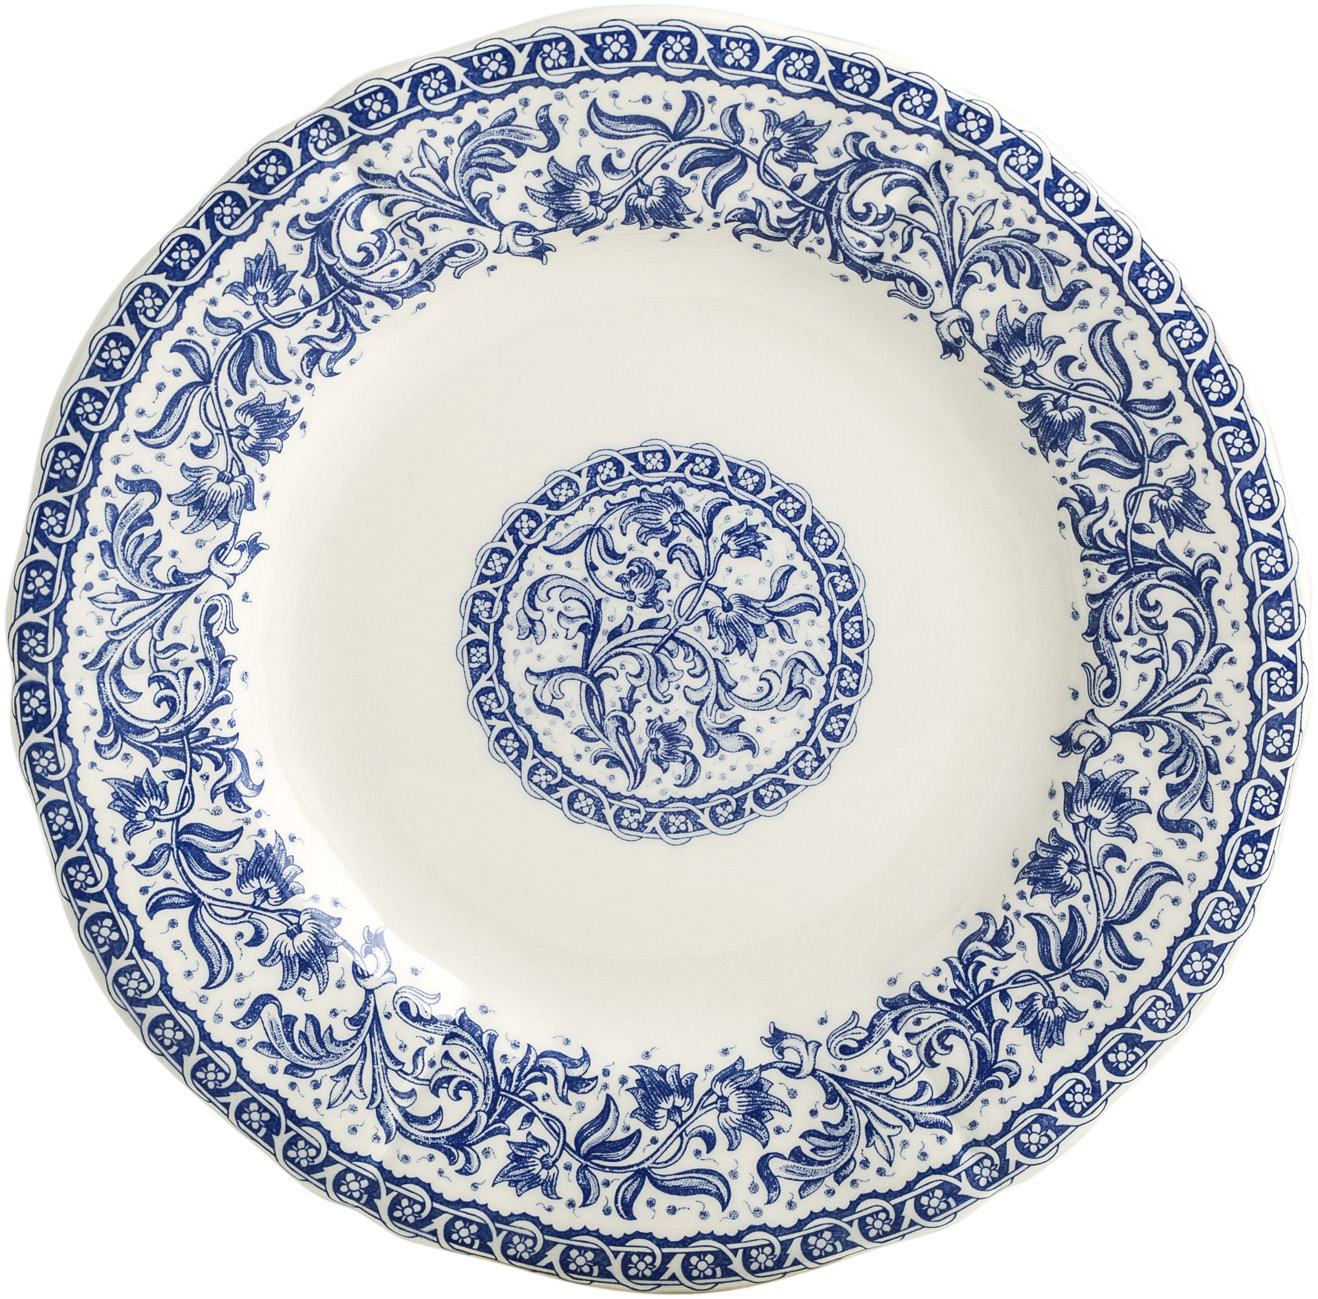 Rouen 37 Canape Plate 6 1/2 In Dia | Gracious Style  sc 1 st  Gracious Style & Gien France Rouen Dinnerware | Gracious Style